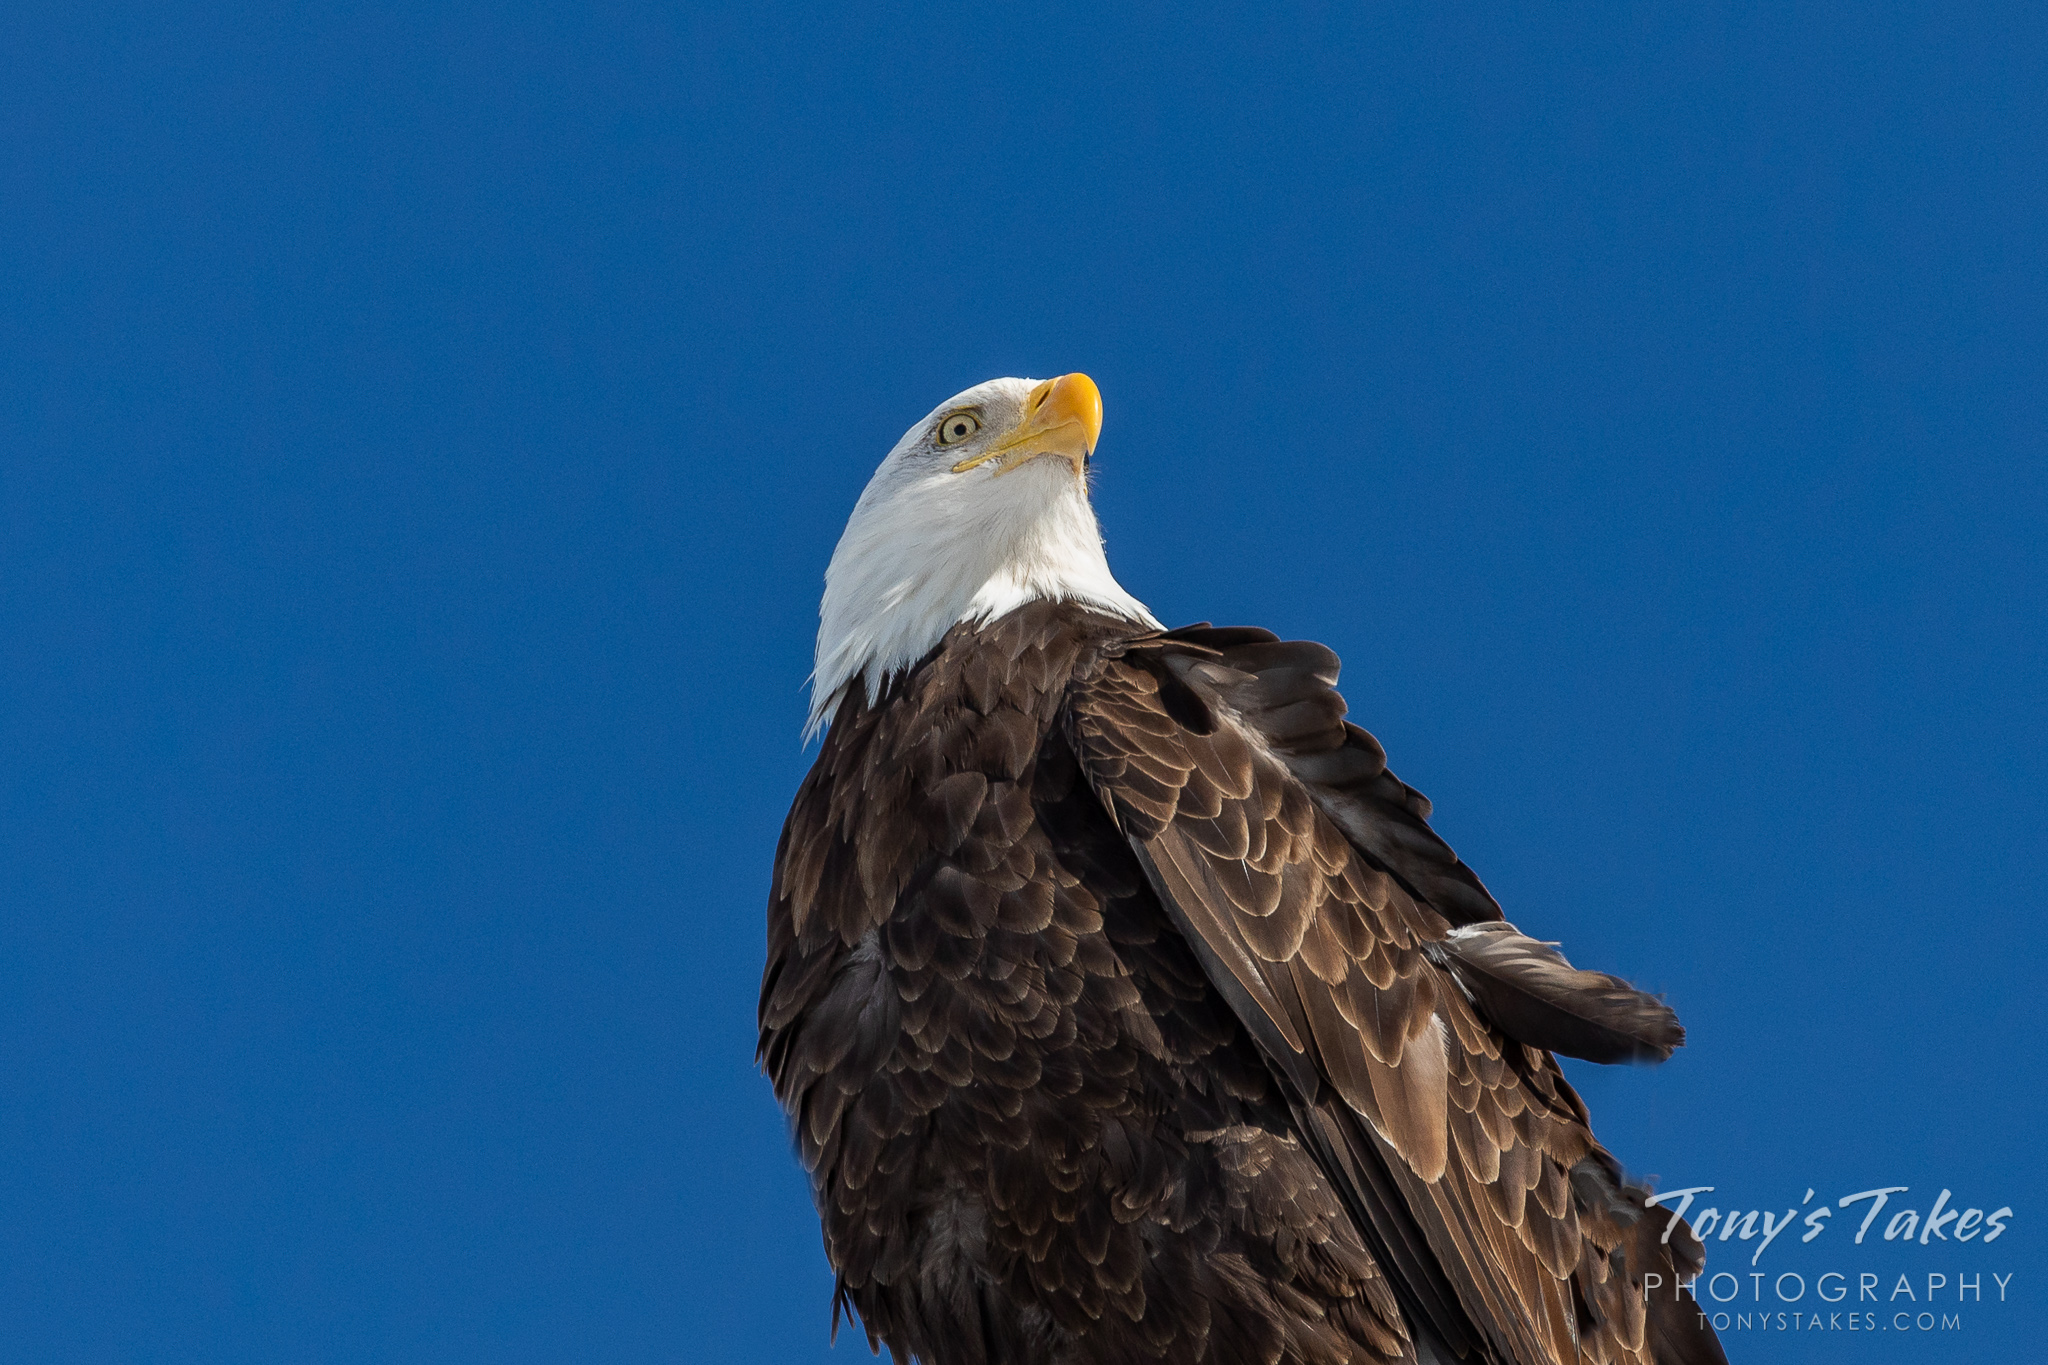 The national symbol on the United States of America. (© Tony's Takes)